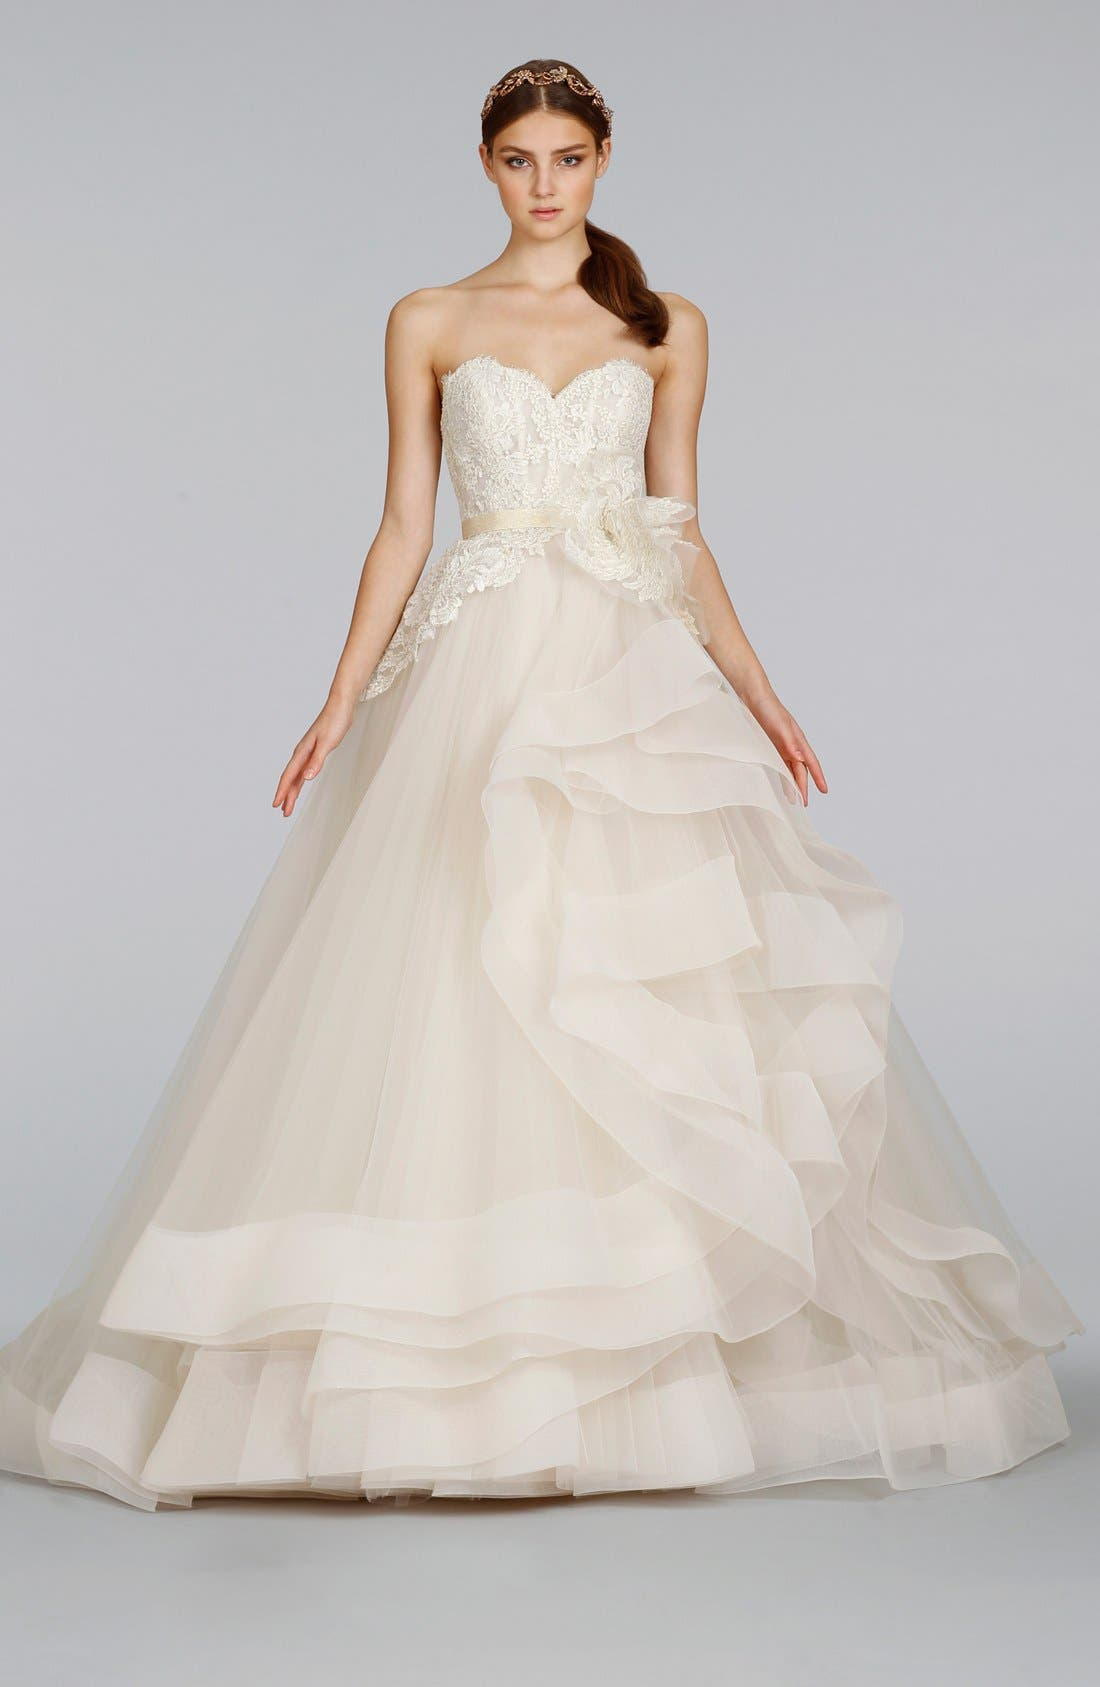 Strapless Lace & Layered Tulle Ballgown,                             Alternate thumbnail 5, color,                             IVORY/GOLD/CHAMPAGNE